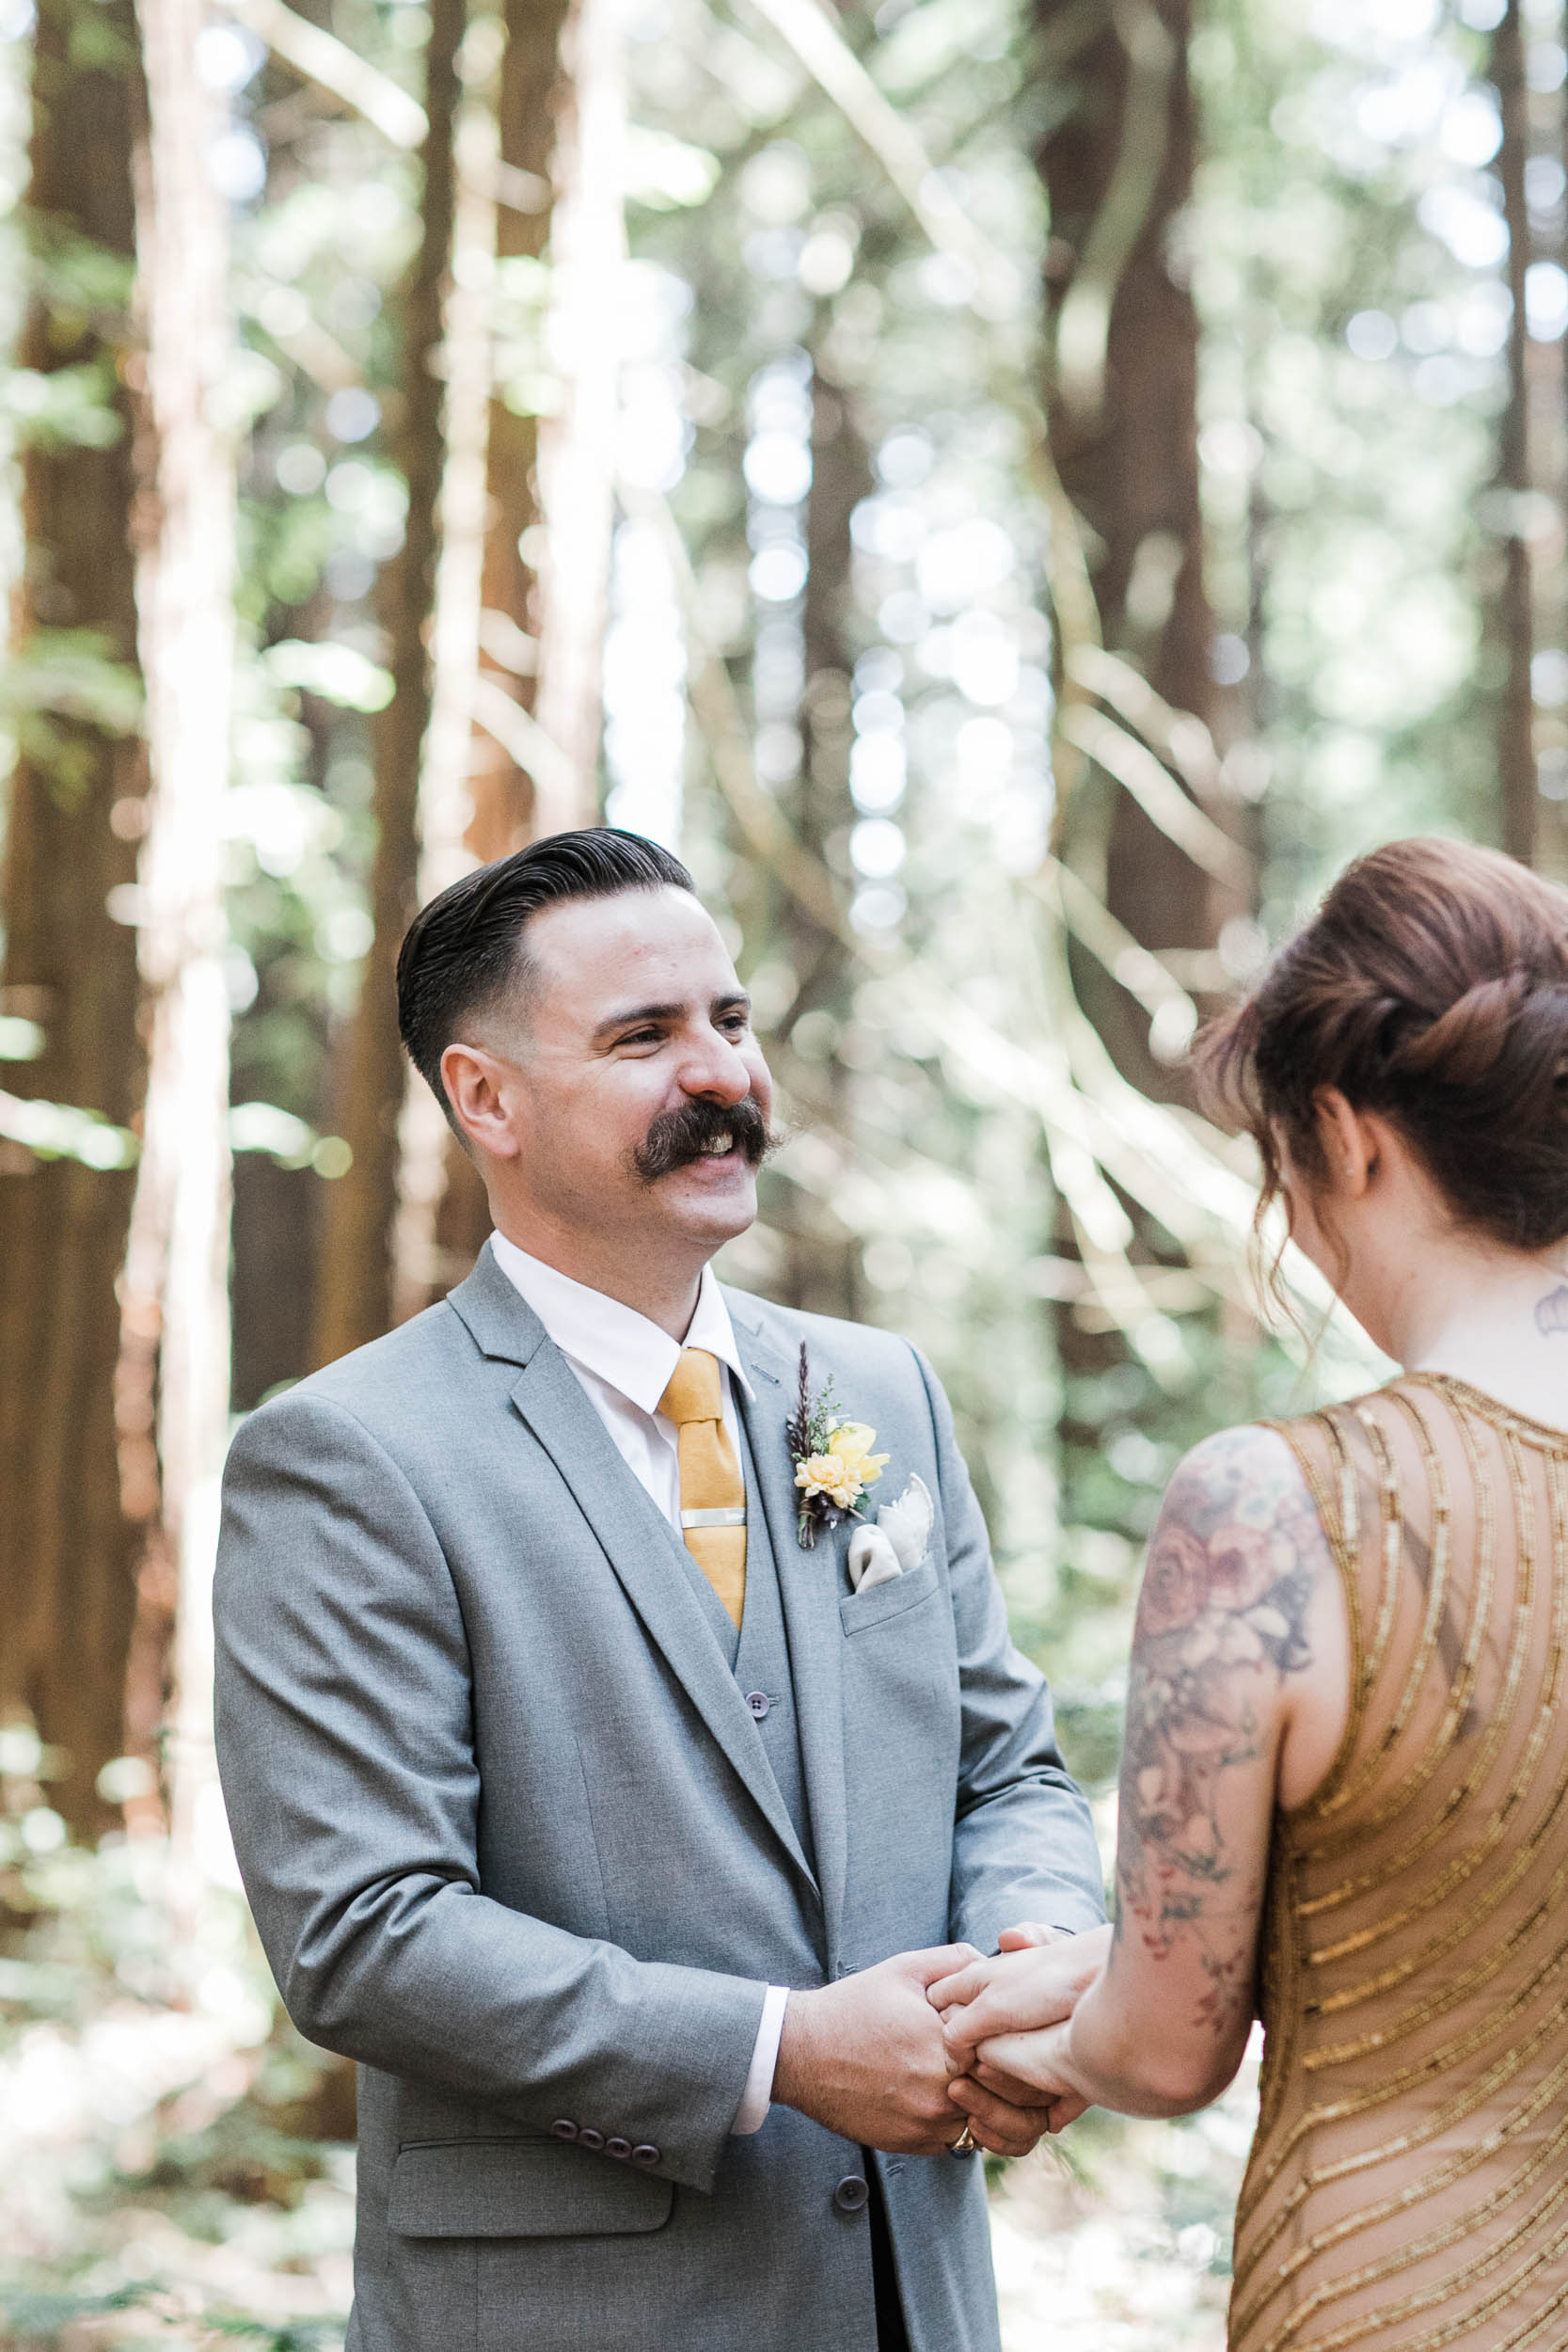 050418_J+S_Redwoods Elopement_Buena Lane Photography_0602.jpg